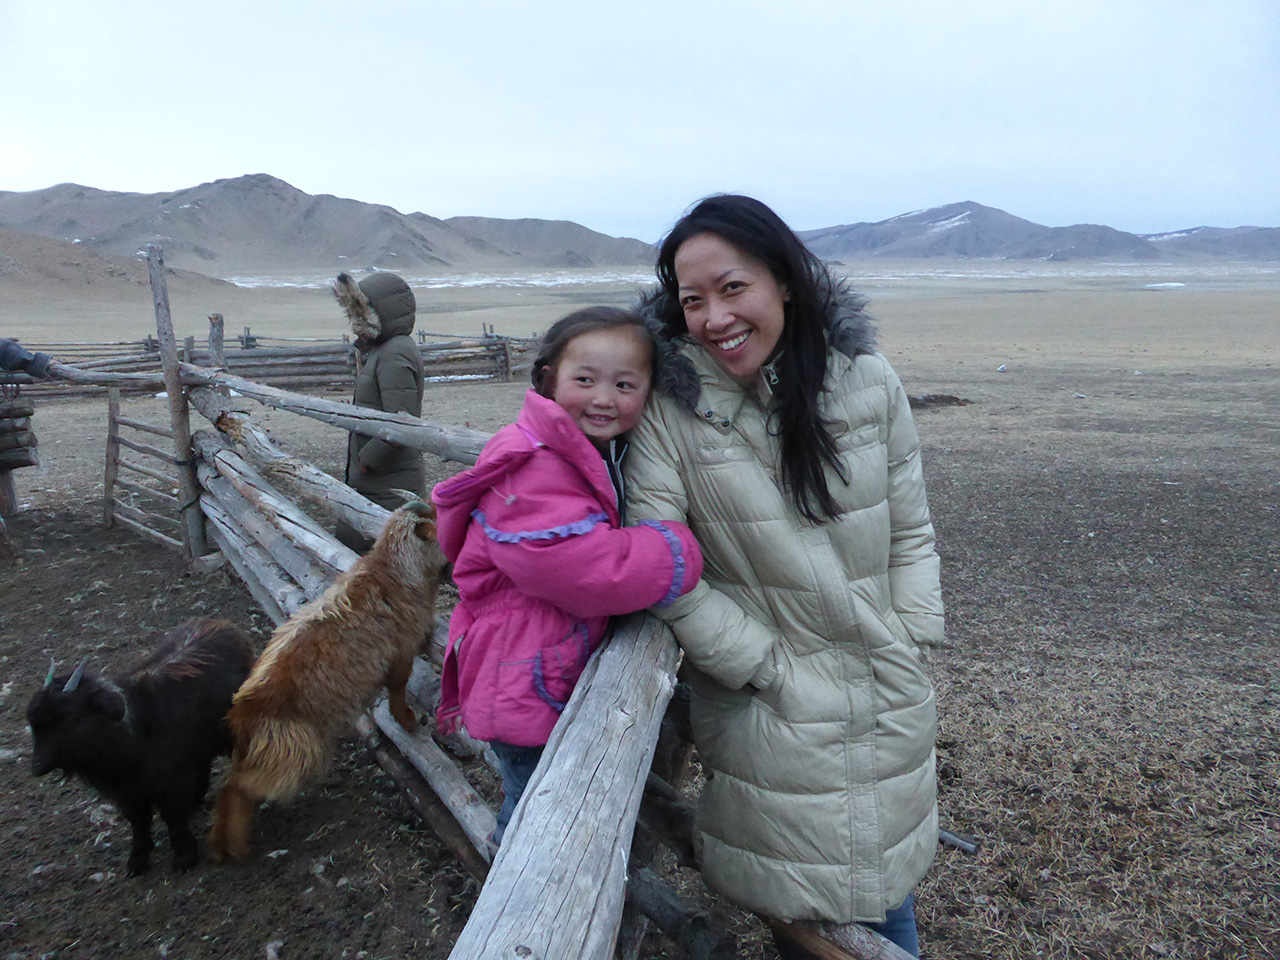 Nancy and the little Mongolian girl. www.tengri.co.uk